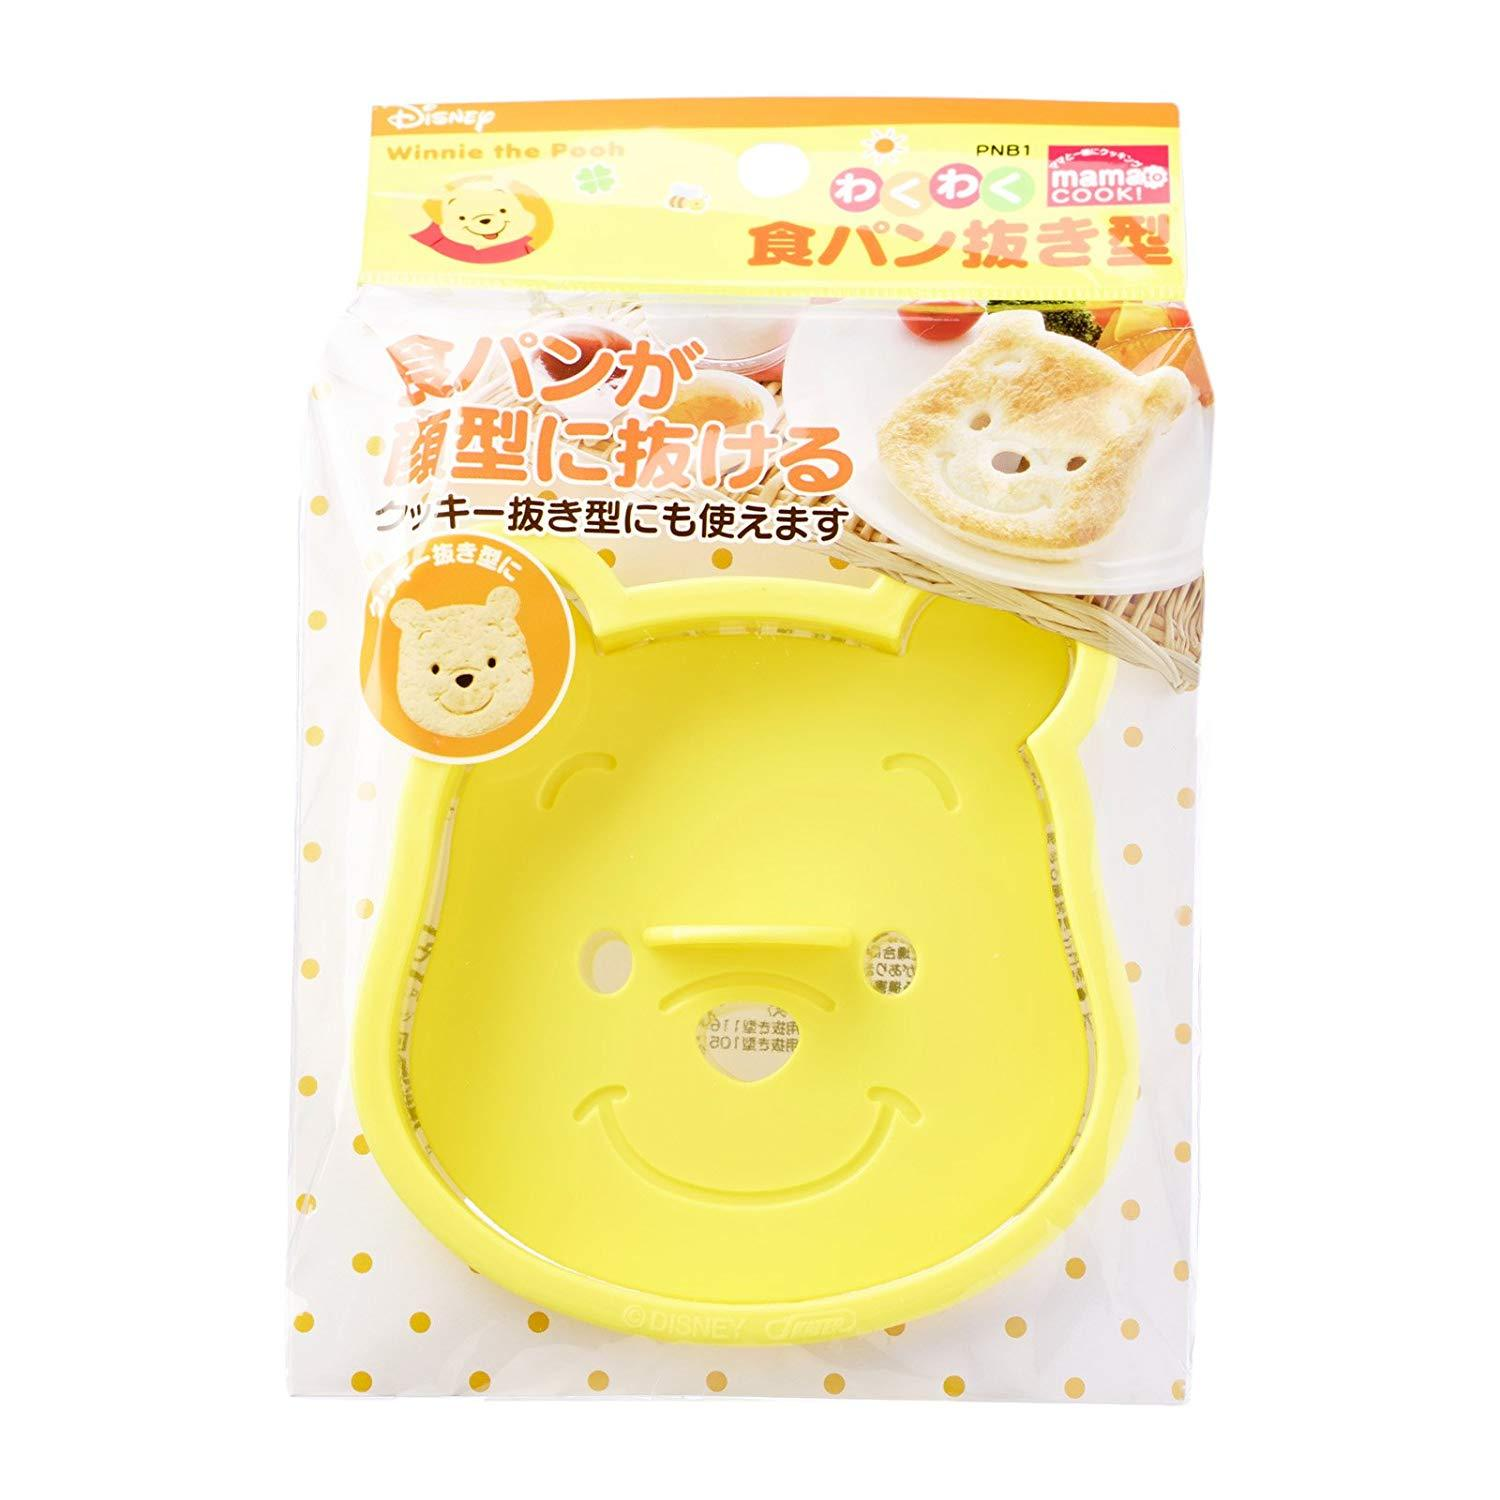 Bread Cutter | Winnie the Pooh by Skater - Bento&co Japanese Bento Lunch Boxes and Kitchenware Specialists